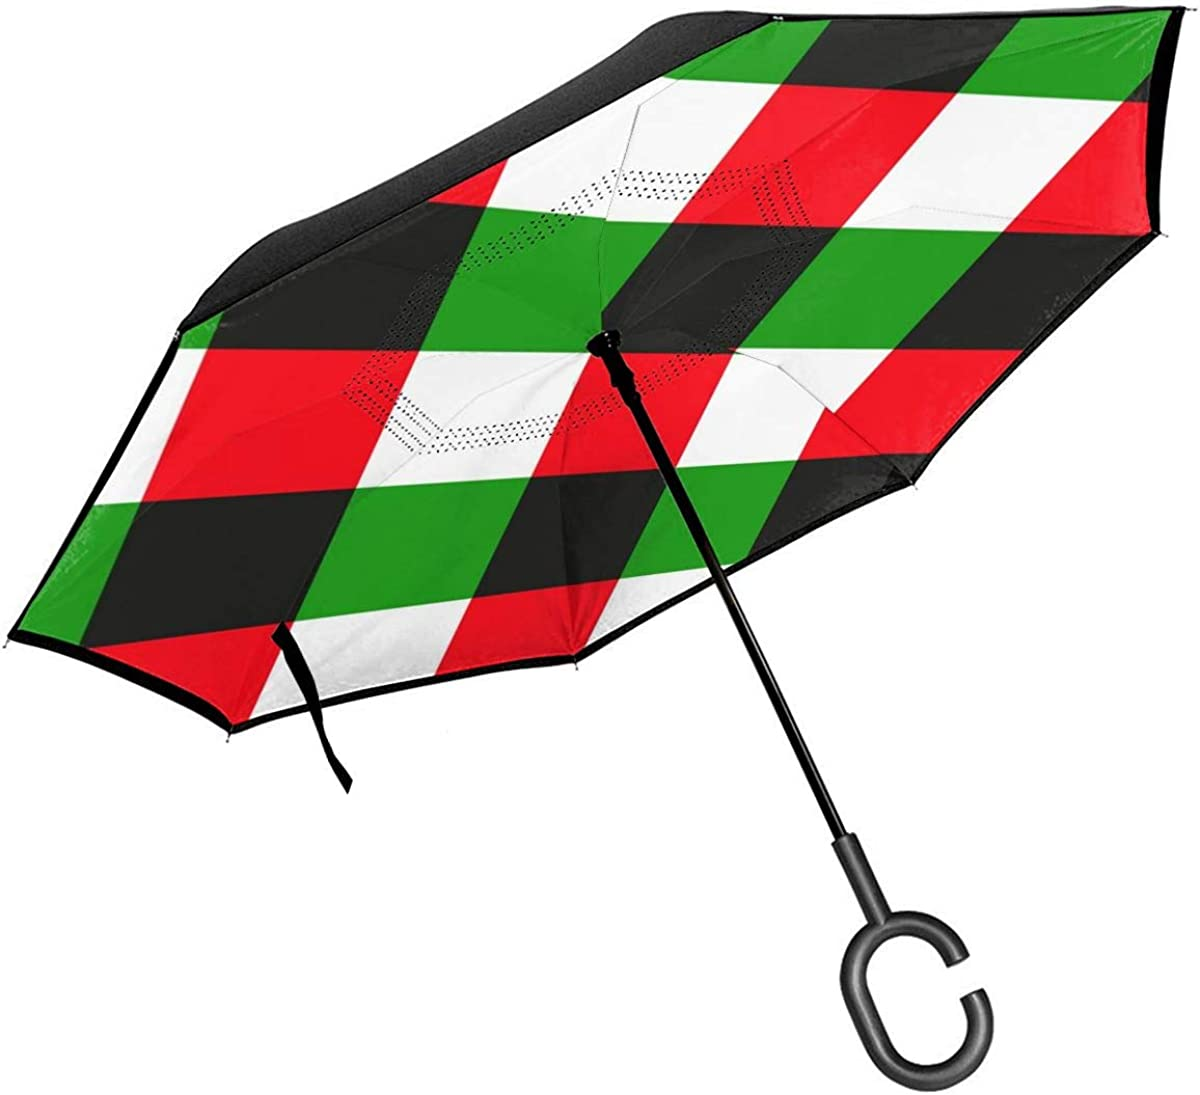 Reverse Umbrella Double Layer Inverted Umbrellas For Car Rain Outdoor With C-Shaped Handle British Traditional Lattice Background Map Personalized